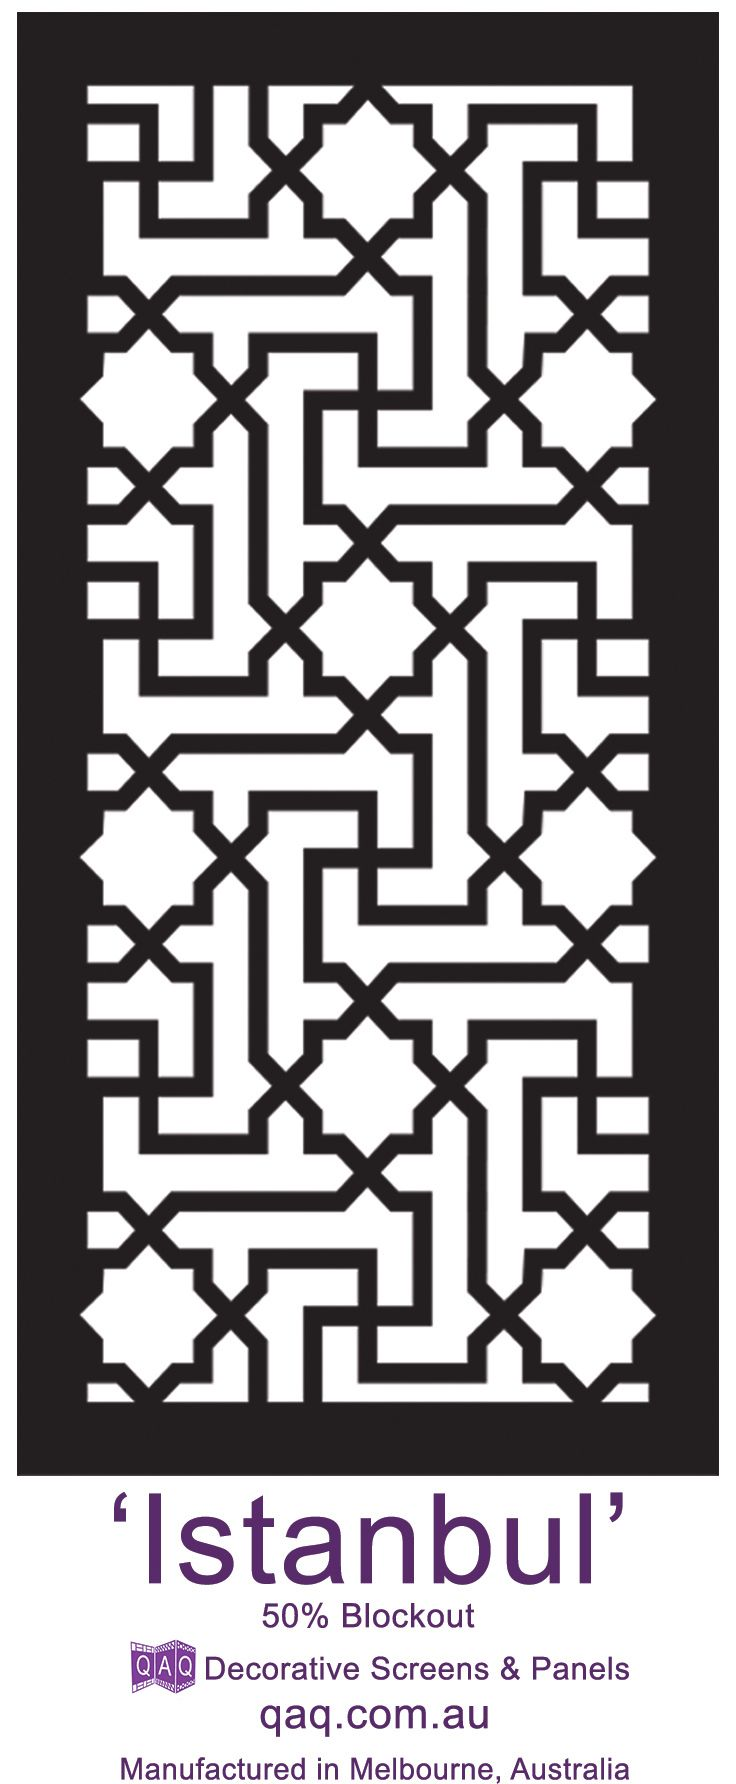 Laser cut screen 'Istanbul' design by QAQ Decorative Screens & Panels. Made in Melbourne, VIC.